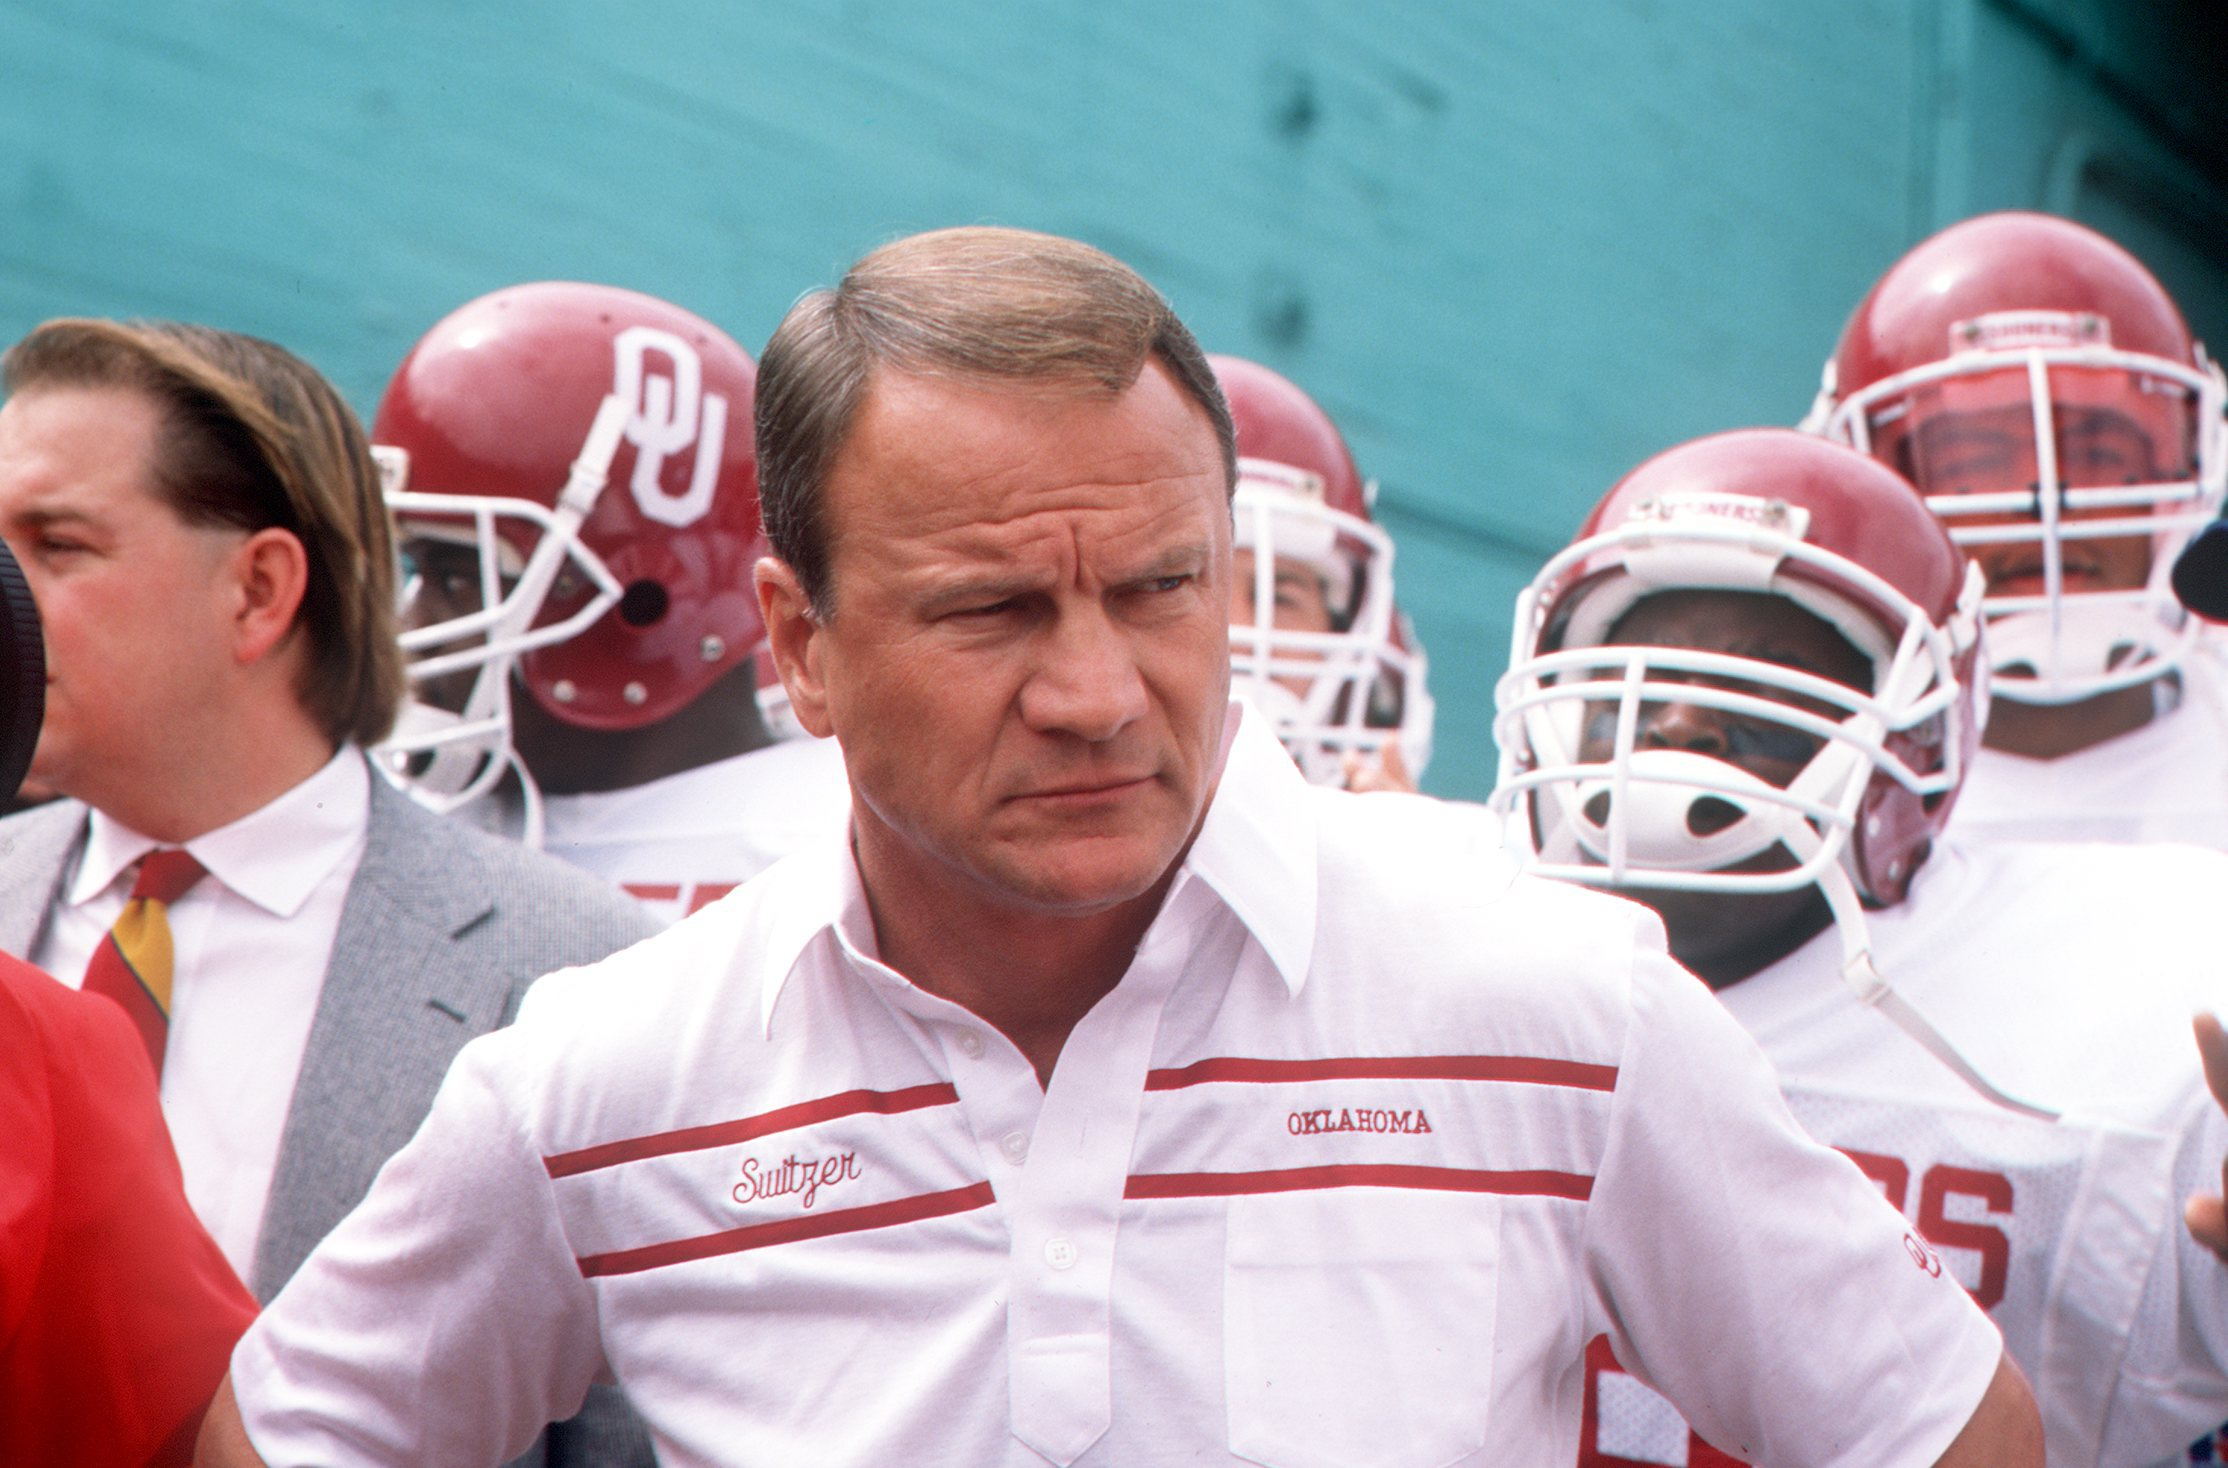 24 SEP 1988:  UNIVERSITY OF OKLAHOMA FOOTBALL COACH BARRY SWITZER WITH HIS TEAM BEFORE THE SOONERS 23-7 LOSS TO THE USC TROJANS.  Mandatory Credit: STEPHEN DUNN/ALLSPORT